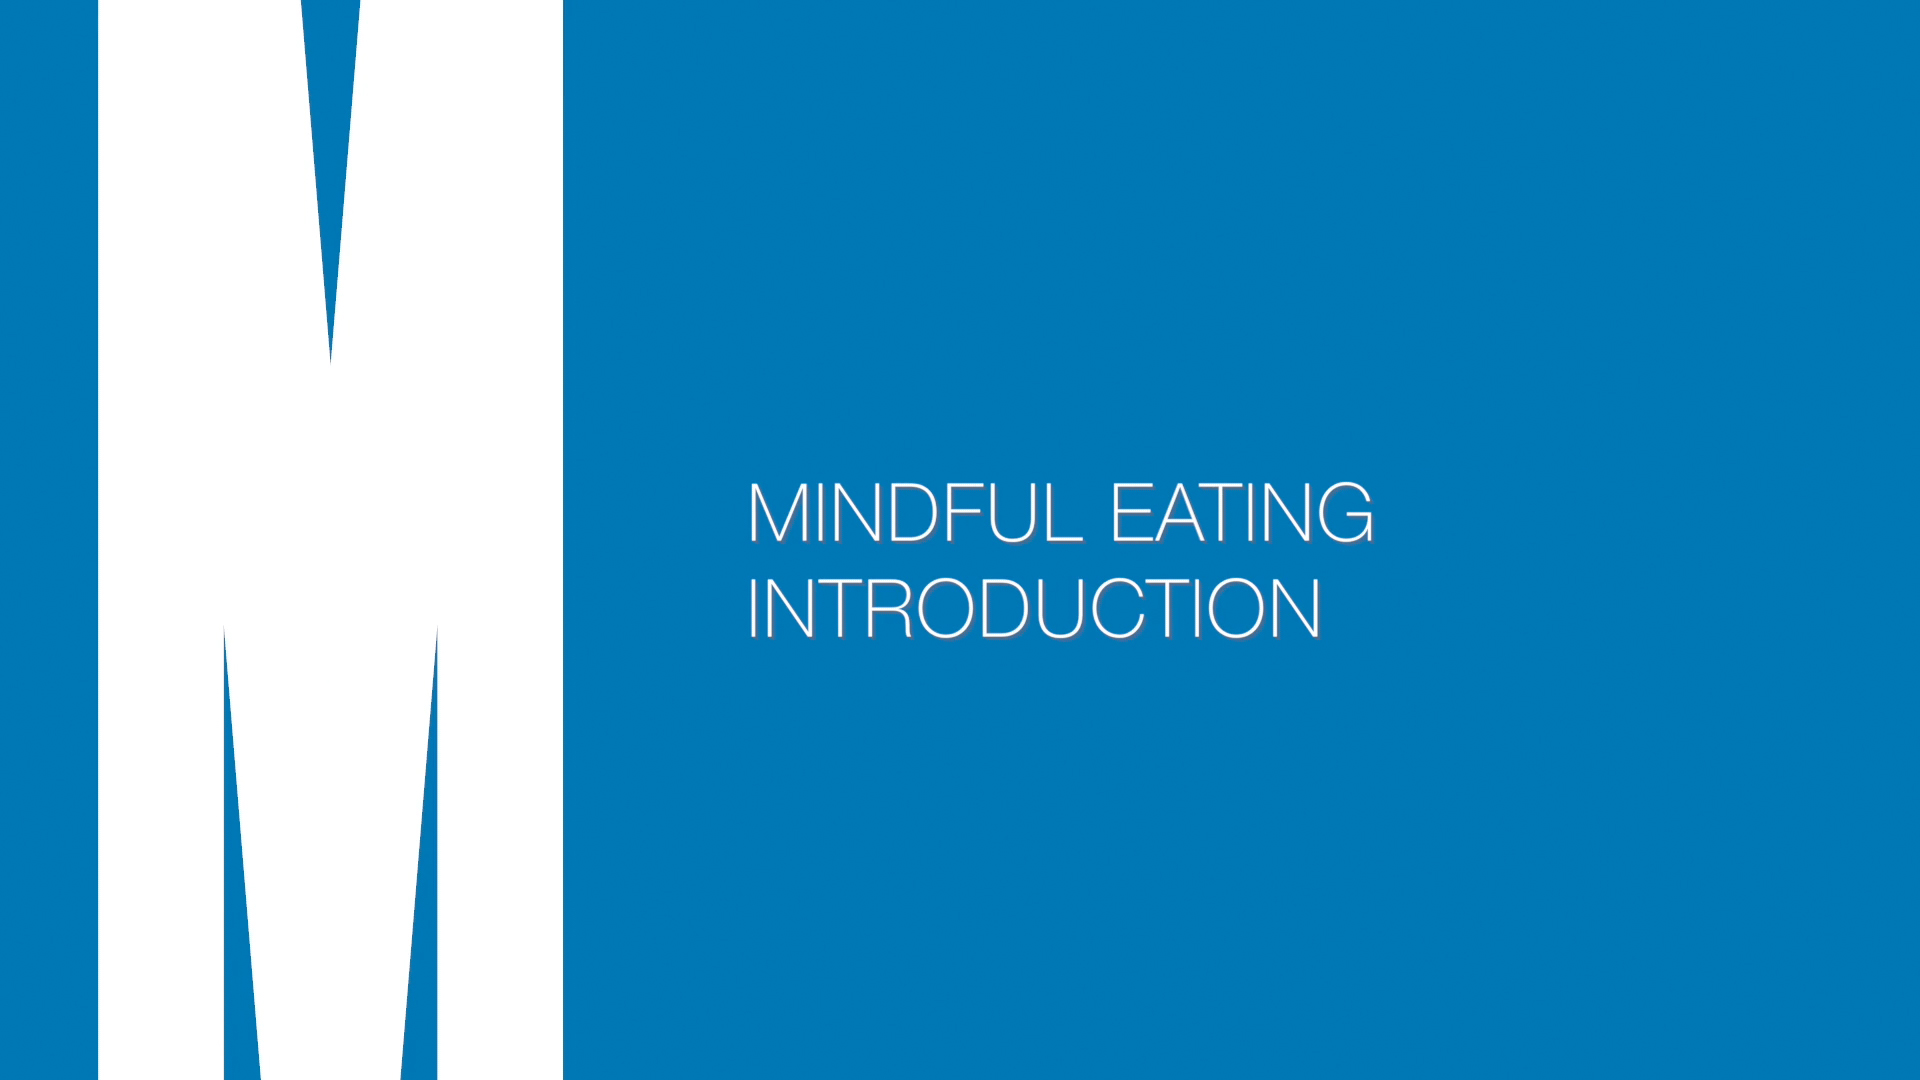 Mindful eating: Introduction